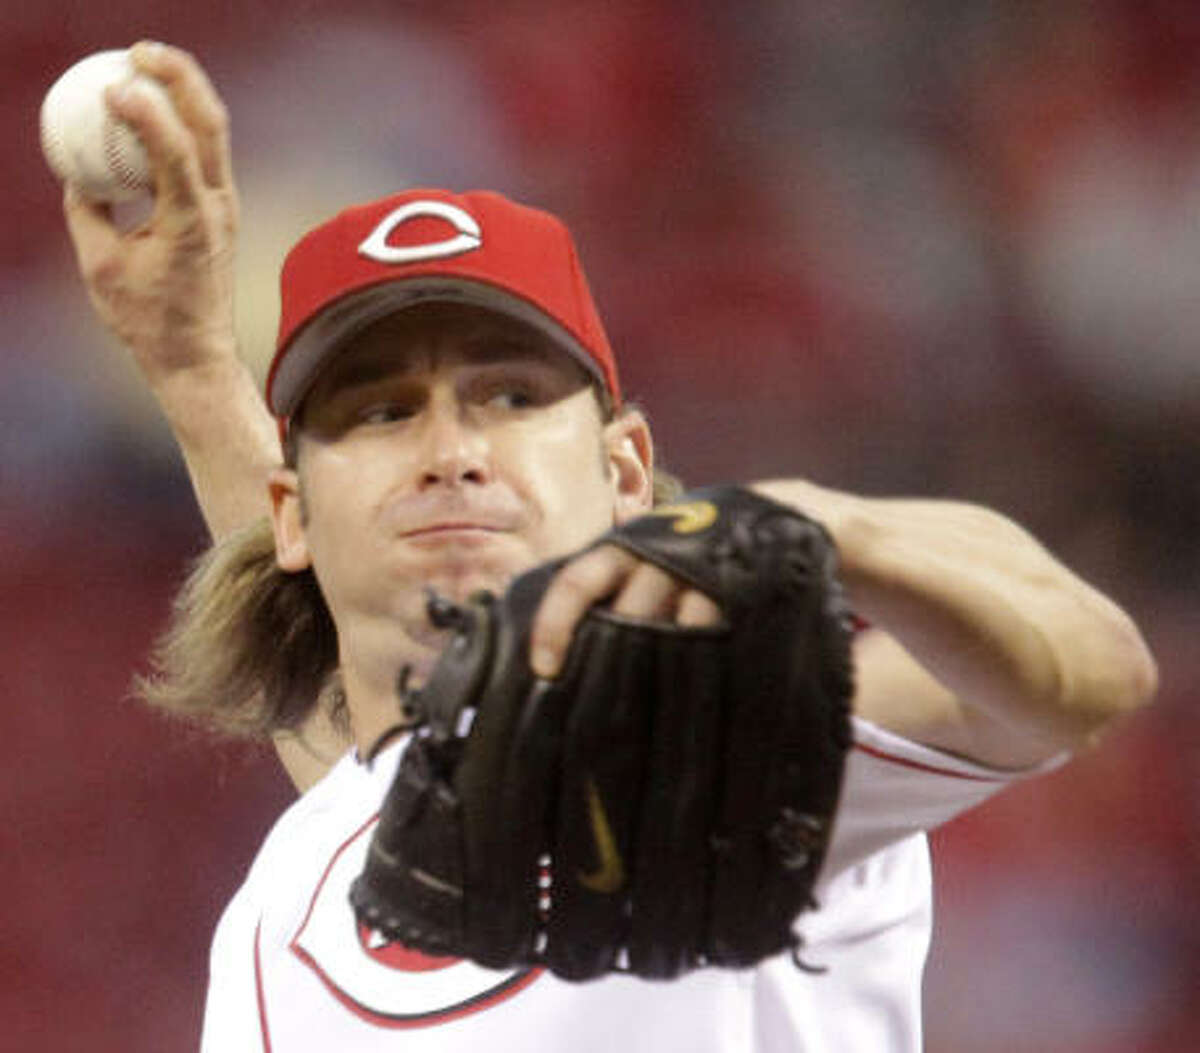 Reds starter Bronson Arroyo improved to 17-10 after holding the Astros to one run in seven innings.